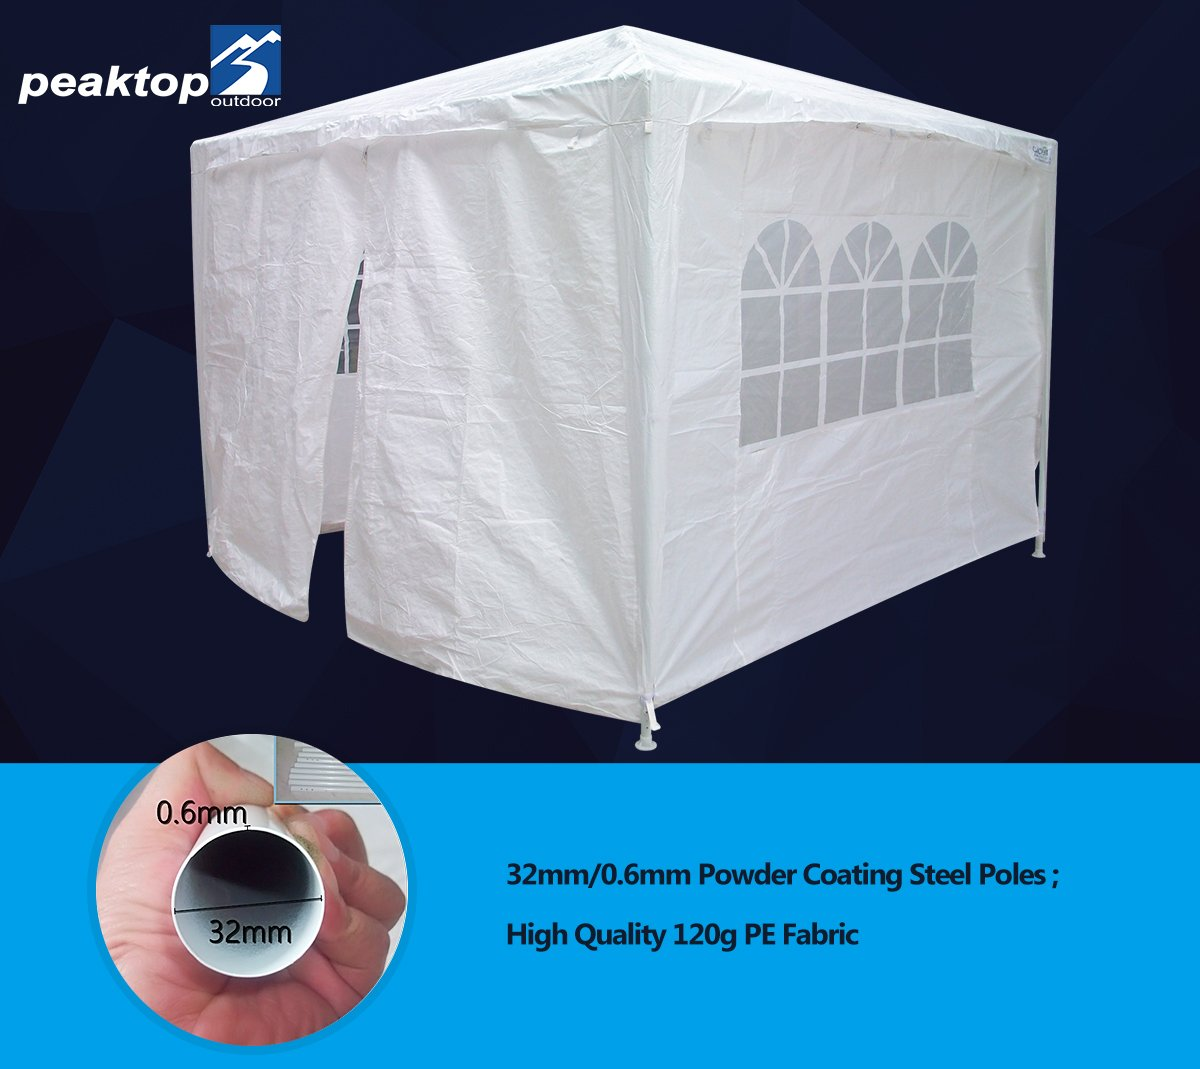 Peaktop 10'x10' Outdoor Party Wedding Tent Canopy Gazebo Storage Shelter Pavilion Multiple Choices (White, 10X10)